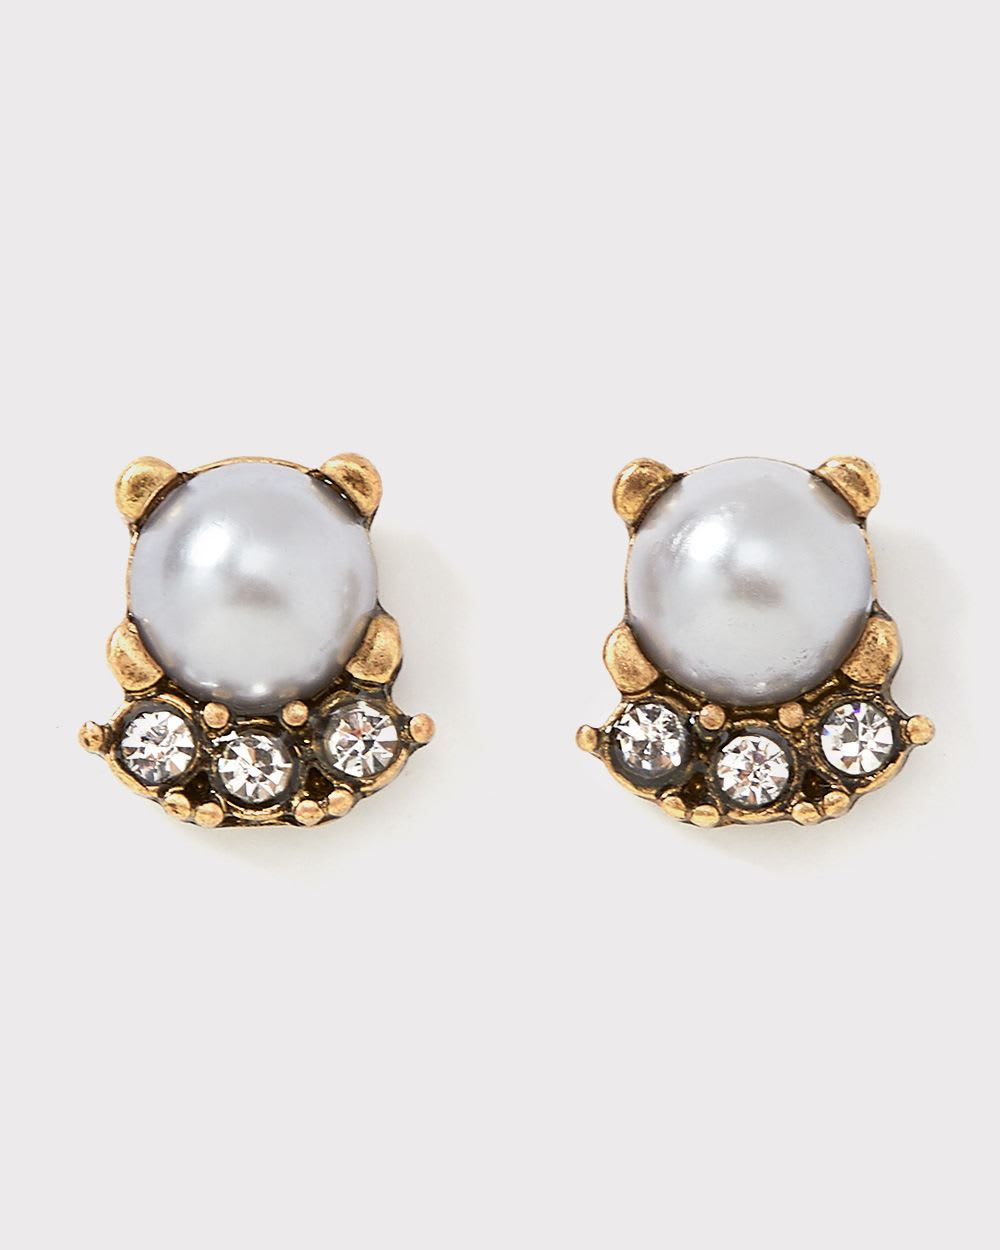 Pearl and glass stud earrings